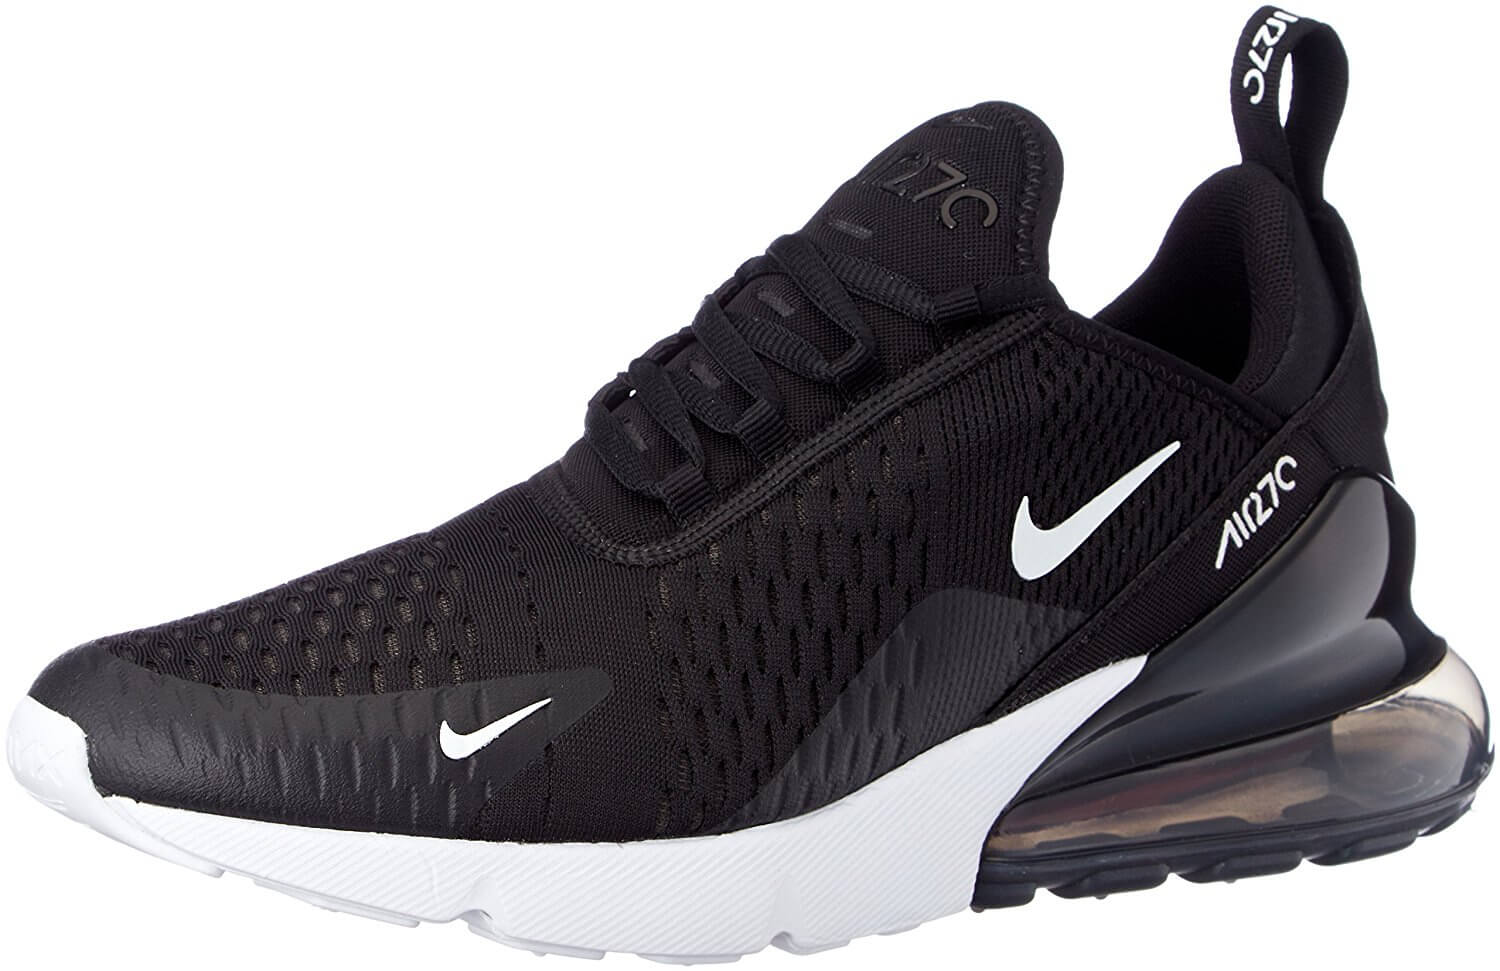 huge selection of f52c8 3721a Nike Air Max 270 Reviewed - To Buy or Not in May 2019